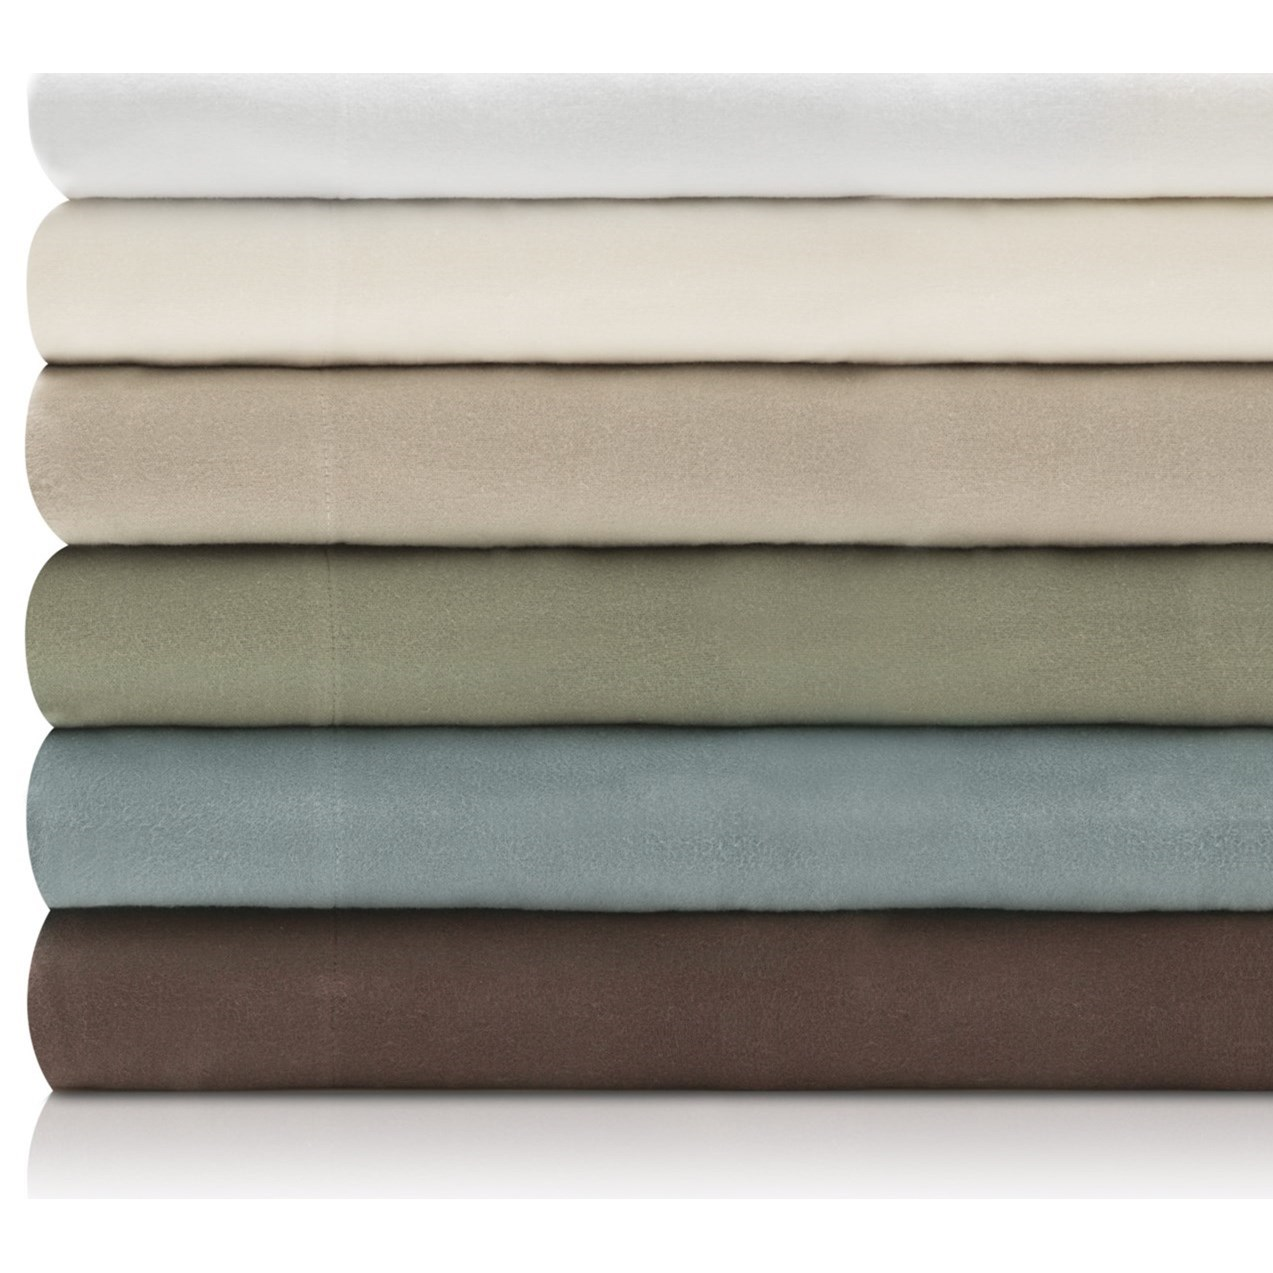 Malouf Portuguese Flannel Twin Woven™ Portuguese Flannel Sheet Set - Item Number: WO19TTIVFS